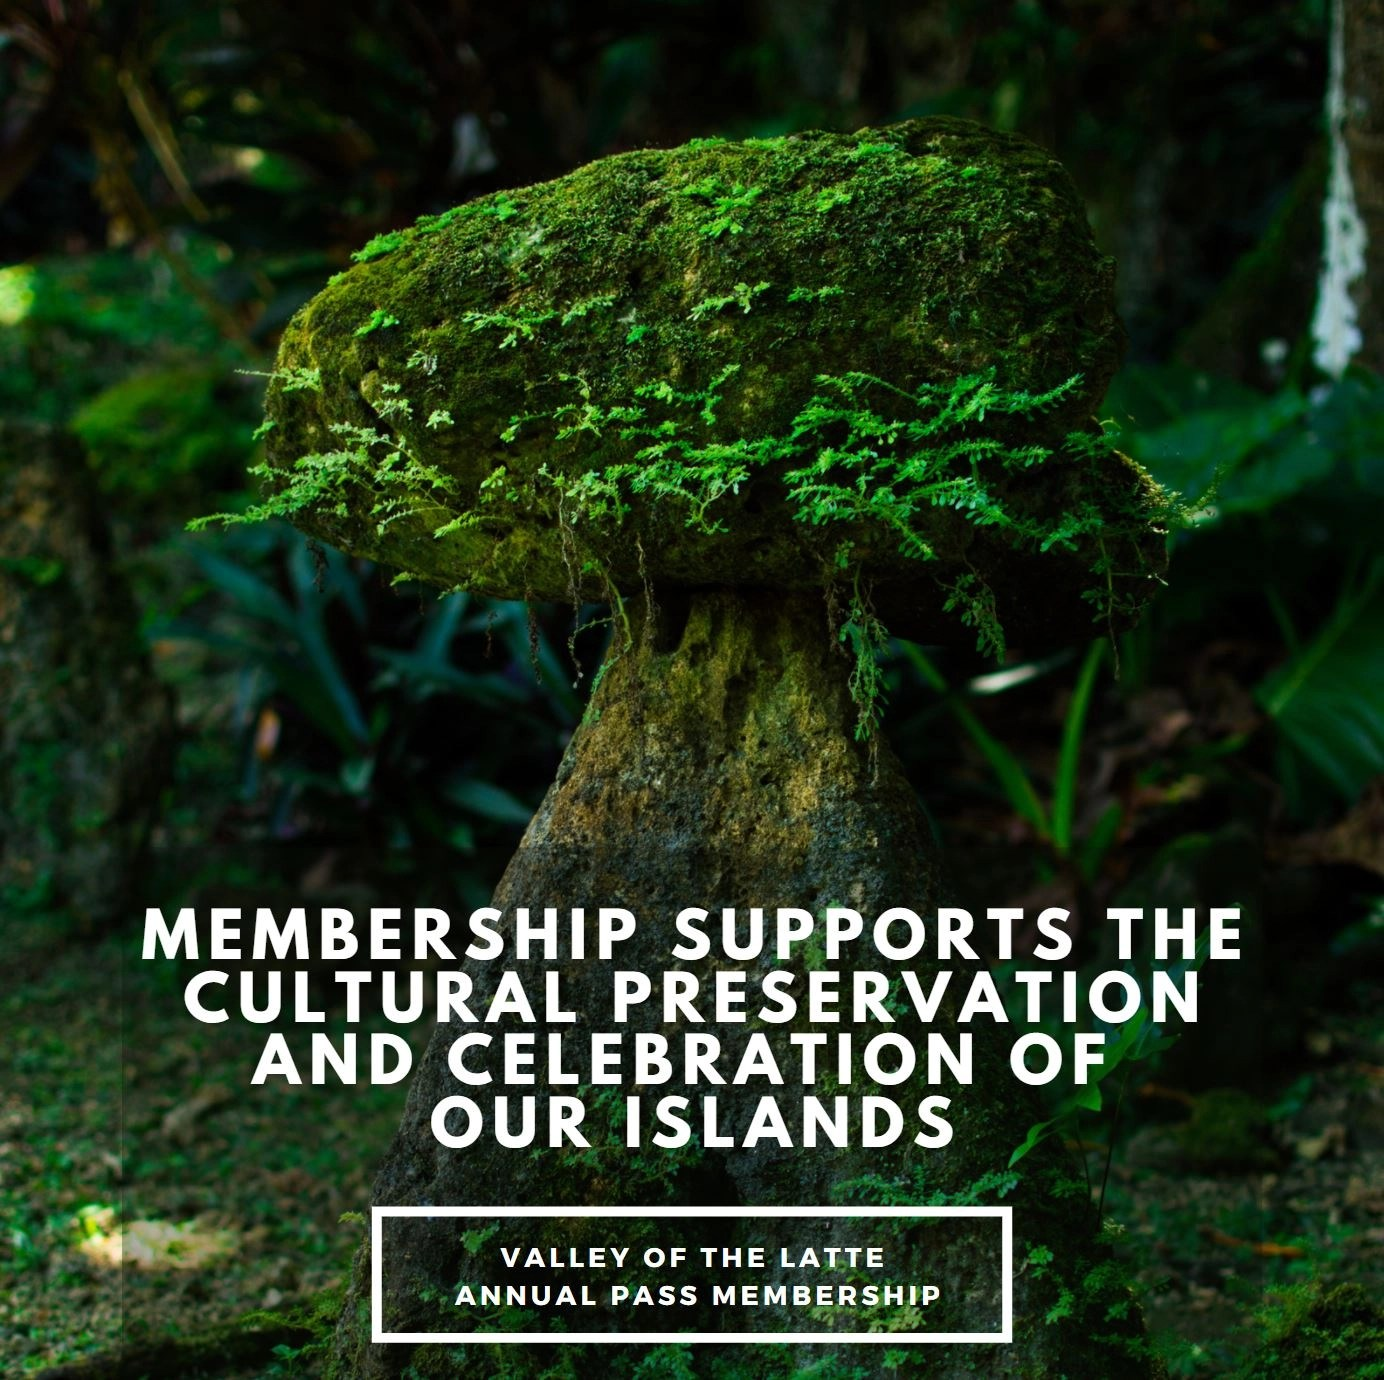 Support the cultures of Micronesia with a Valley of the Latte Annual Pass Membership